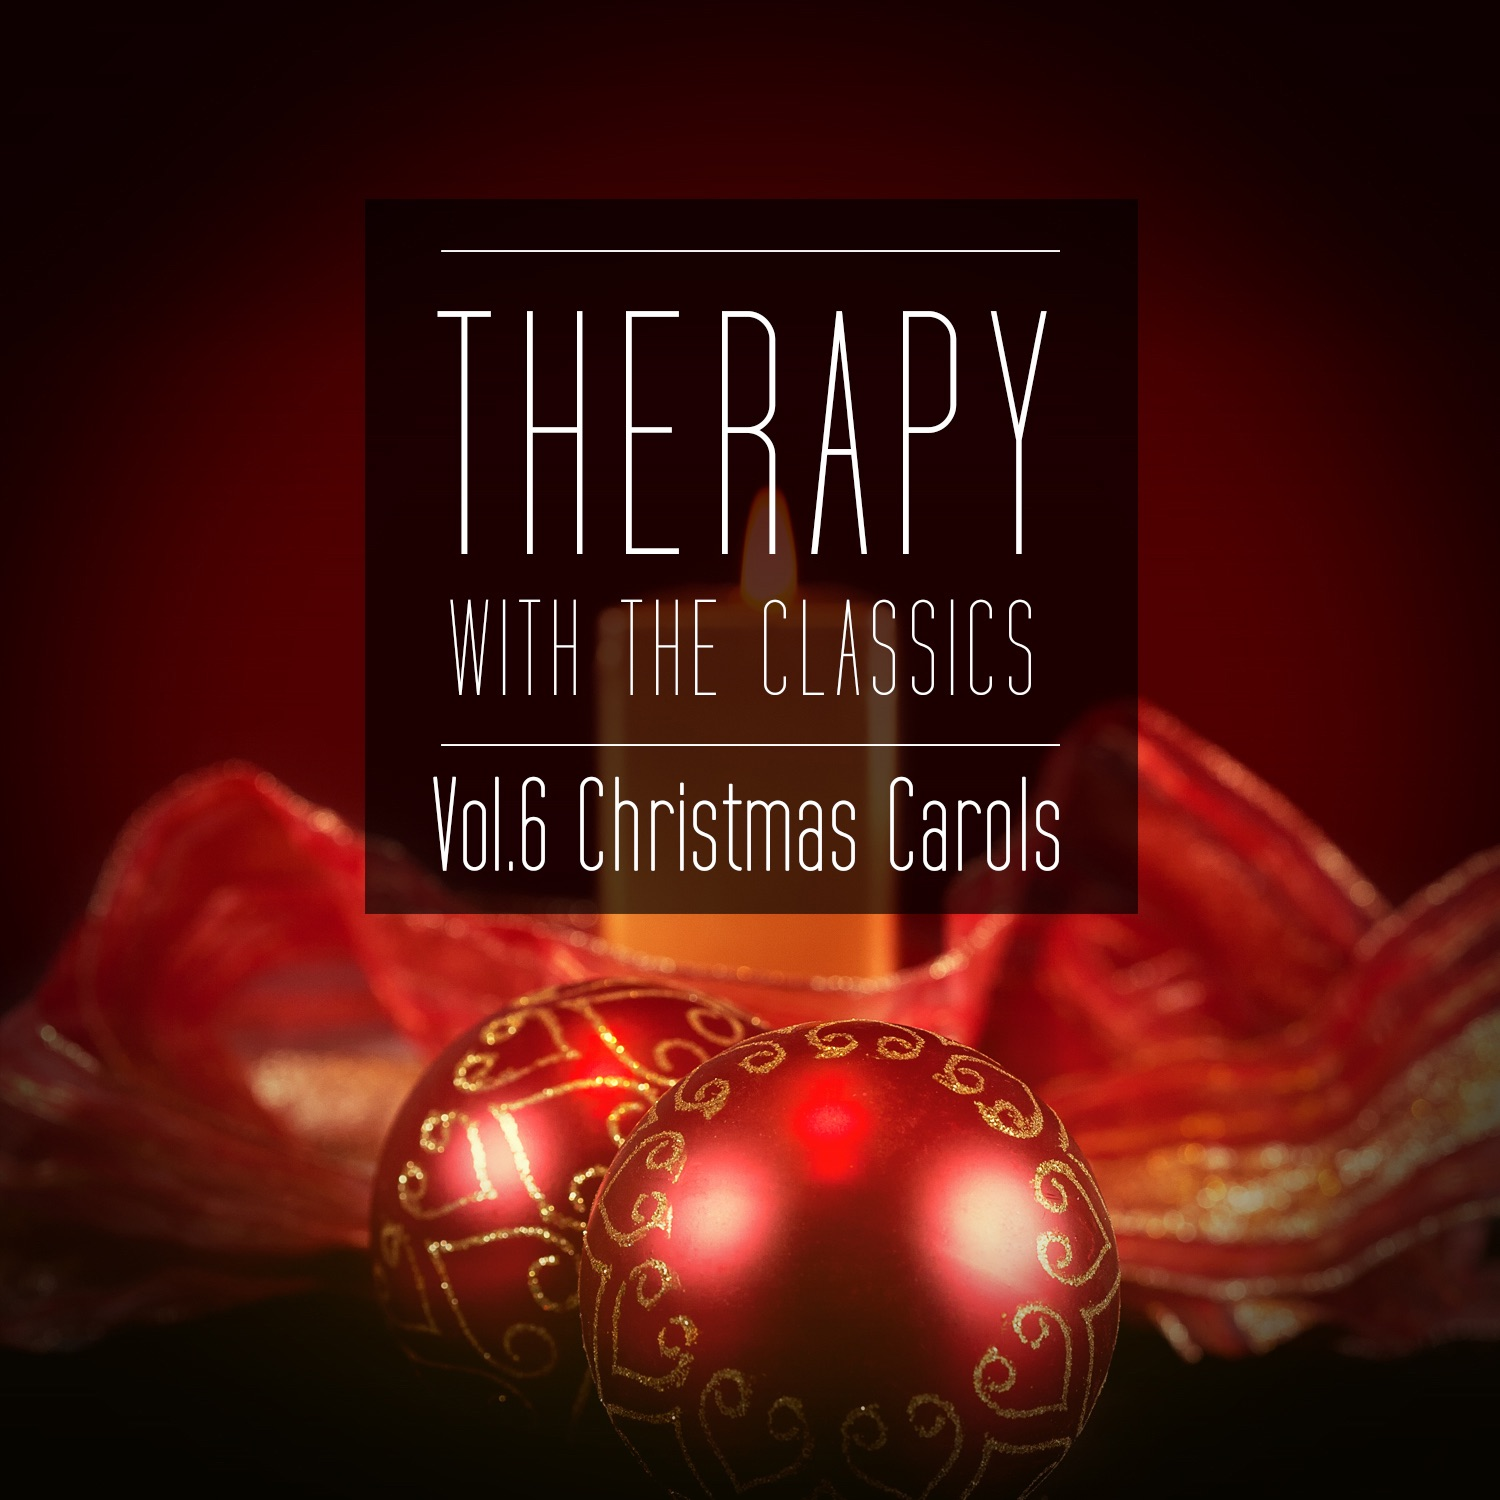 Therapy With the Classics, Vol. 6 (Christmas Carols)